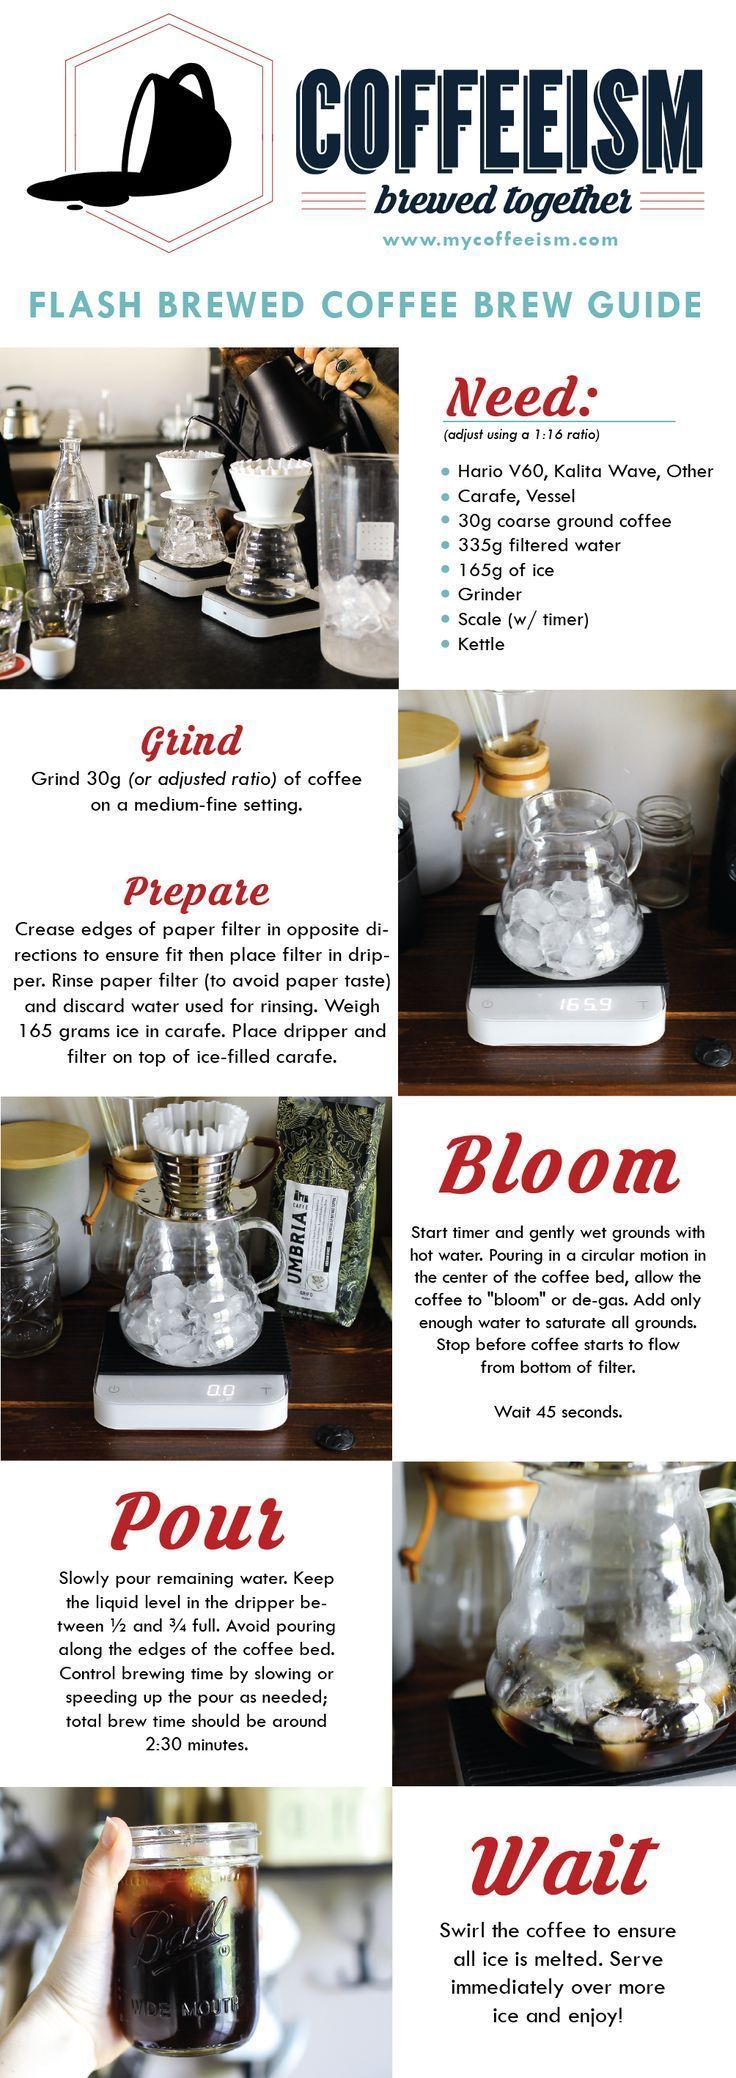 Flash Brewed Iced Coffee Pour Over Coffee Brew Guide Mycoffeeism Com Thecoffeeespressomachine Resep Kopi Pecinta Kopi Kopi